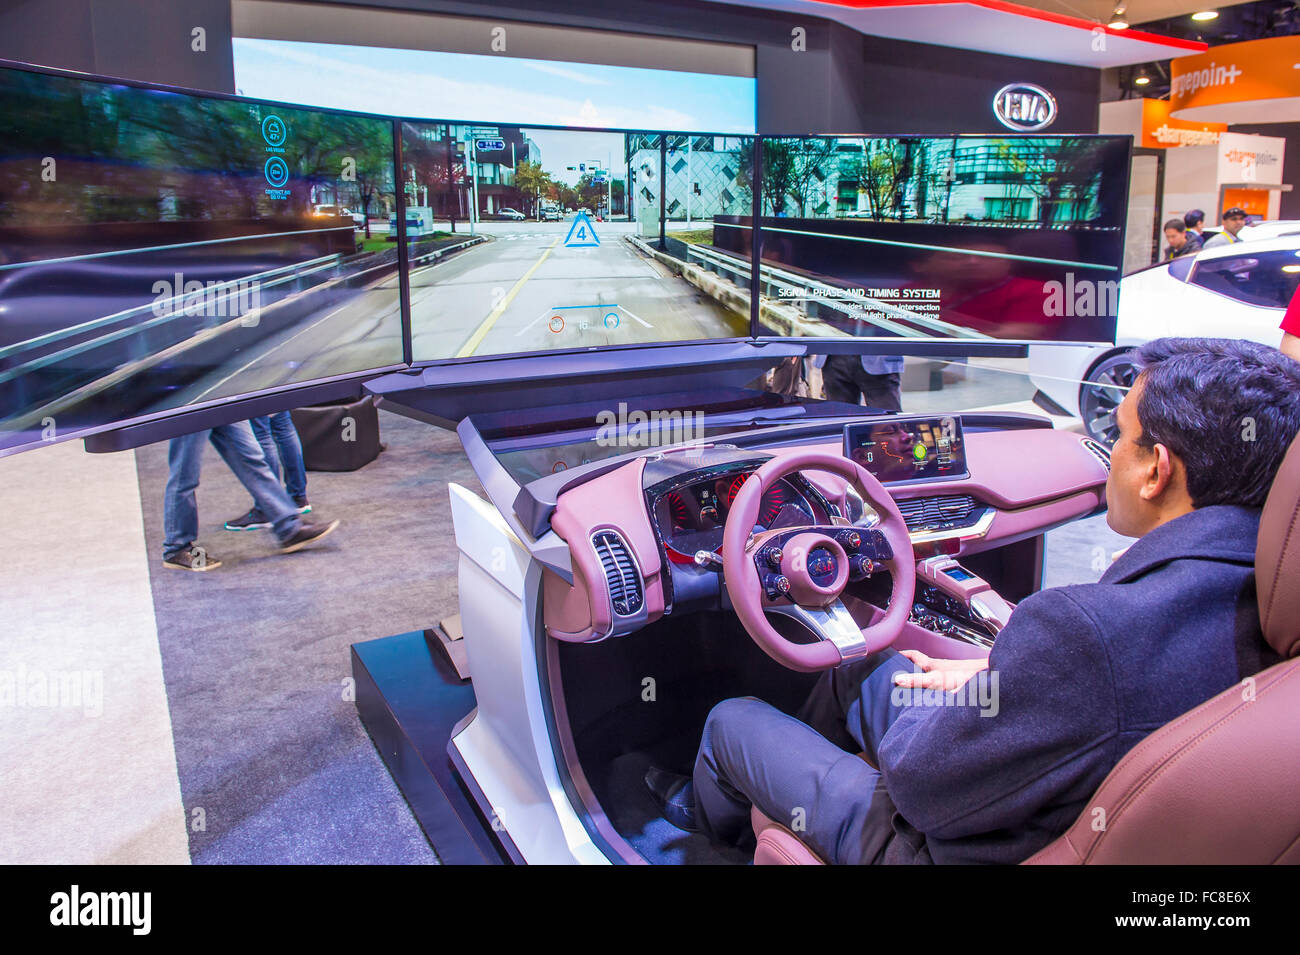 simulator at the kia booth at the ces show in las vegas